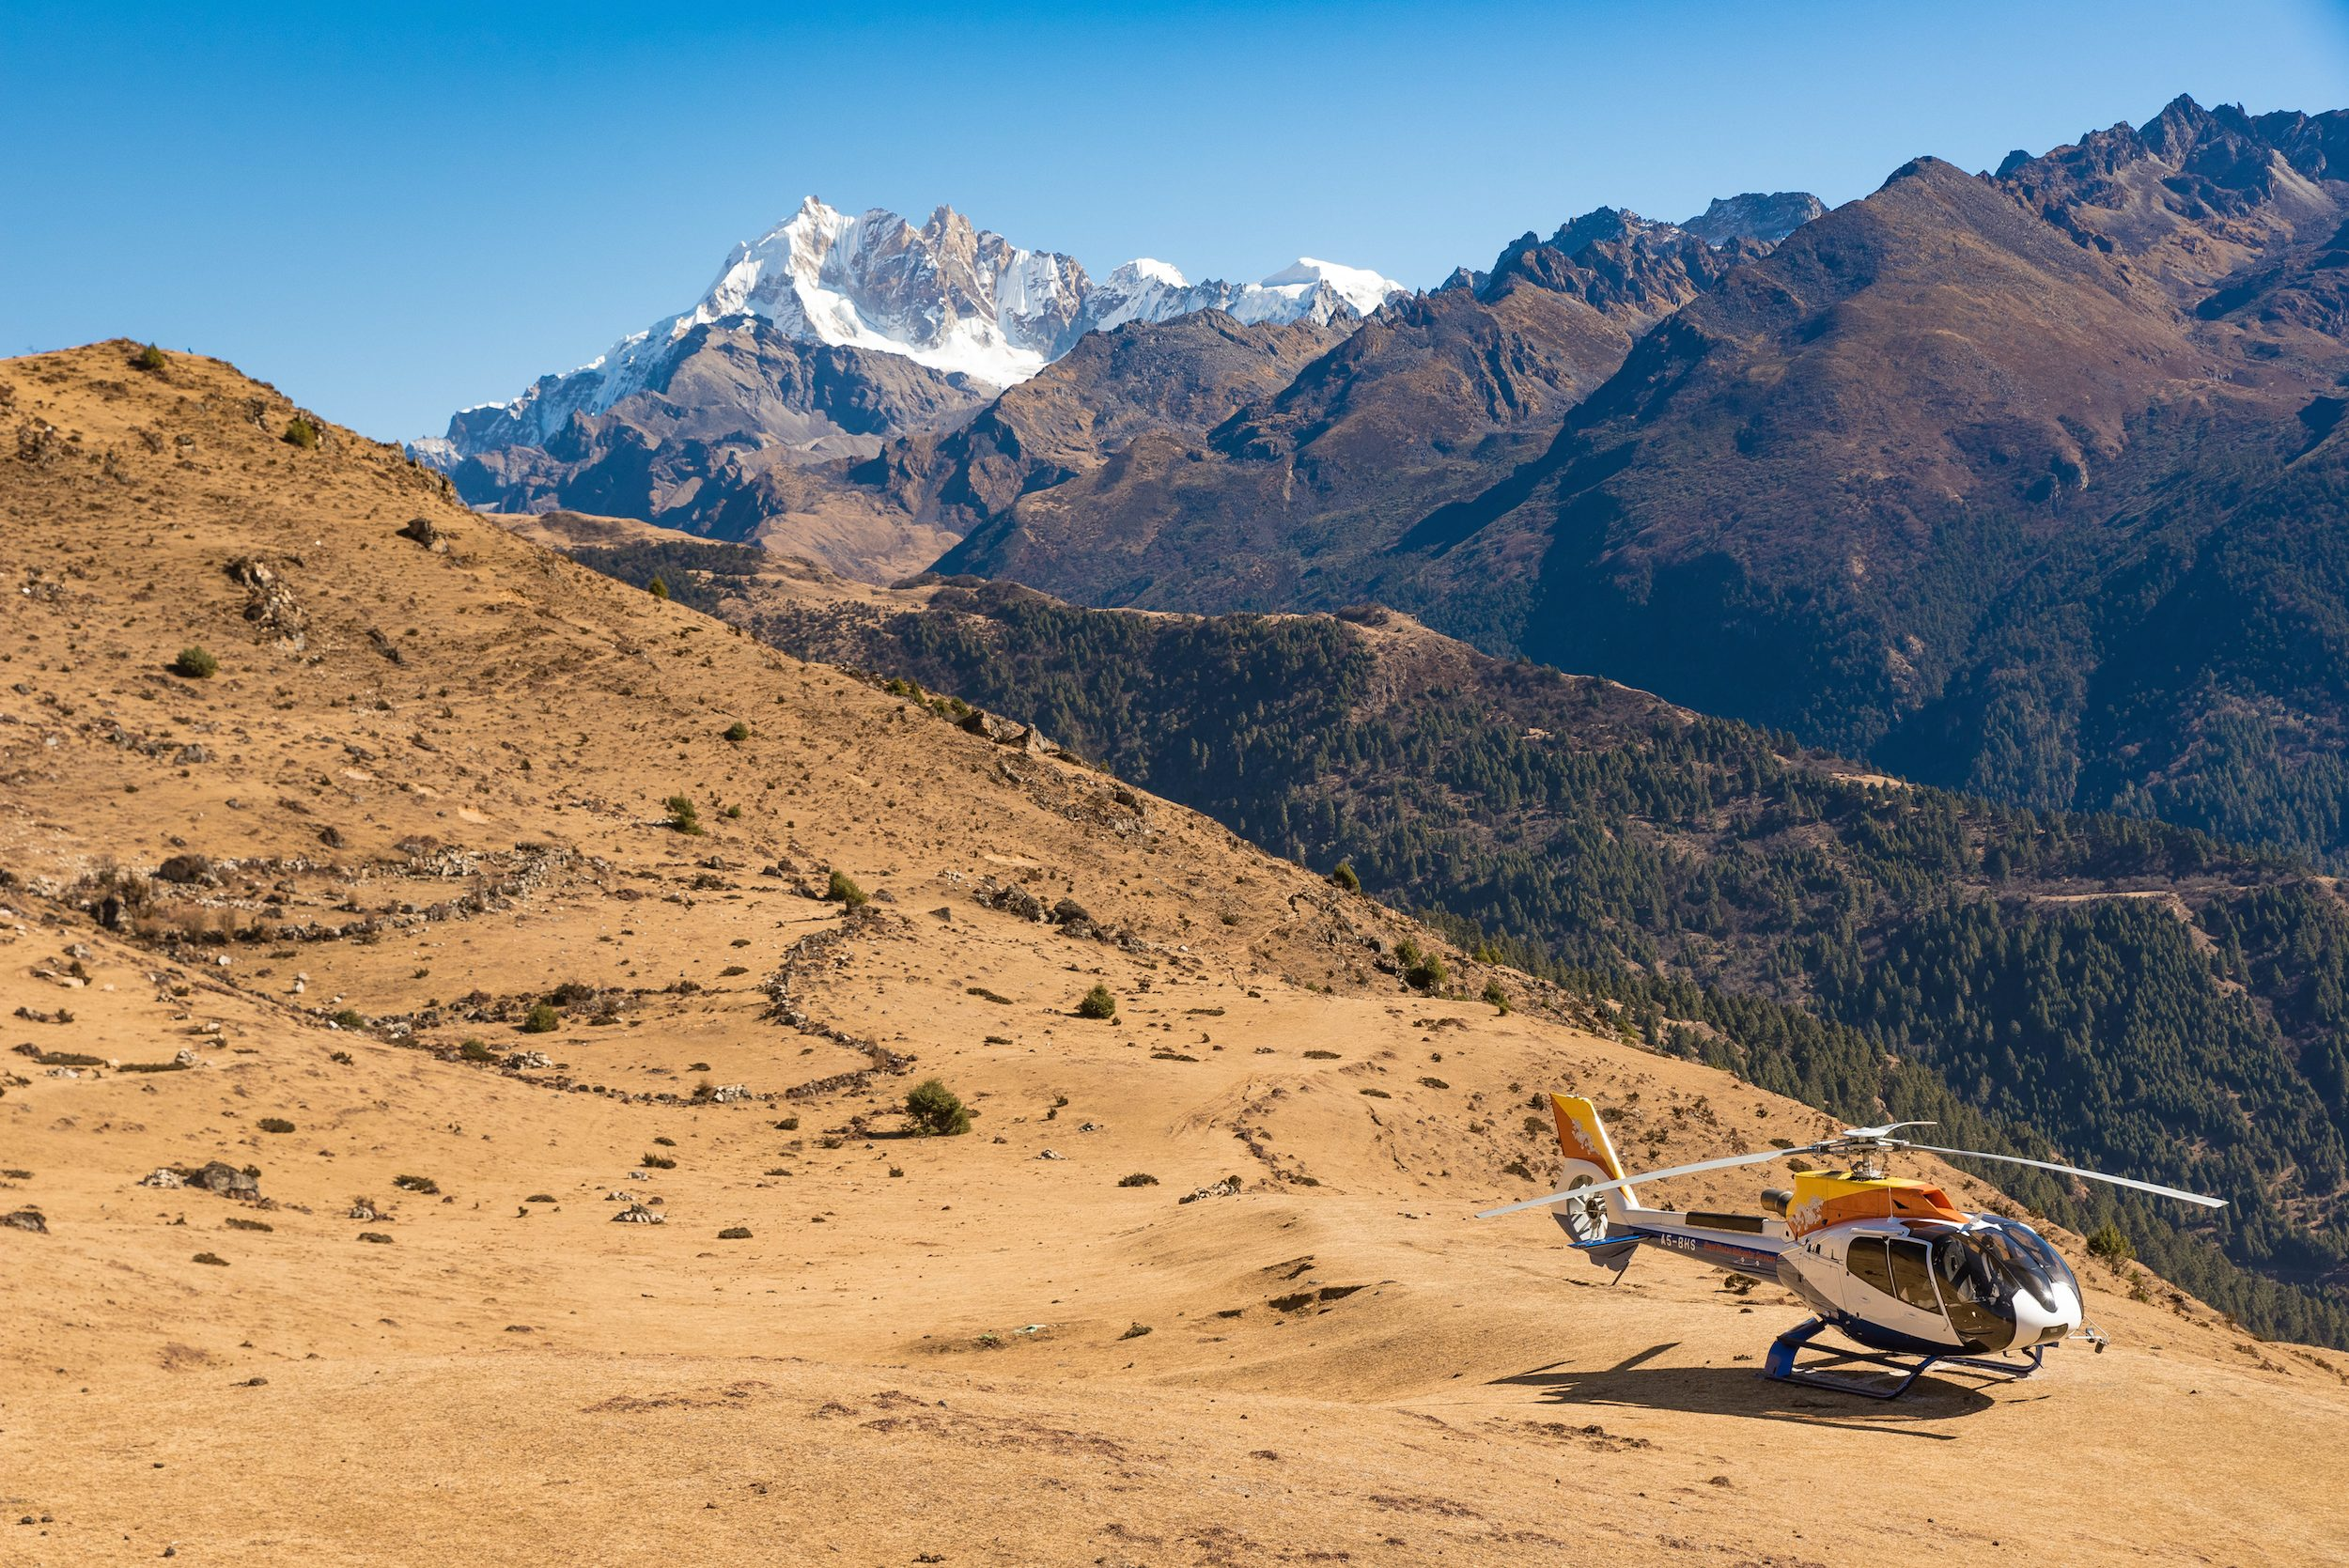 Helicopter on a brown mountainside with icy mountain peaks in the background, Bhutan